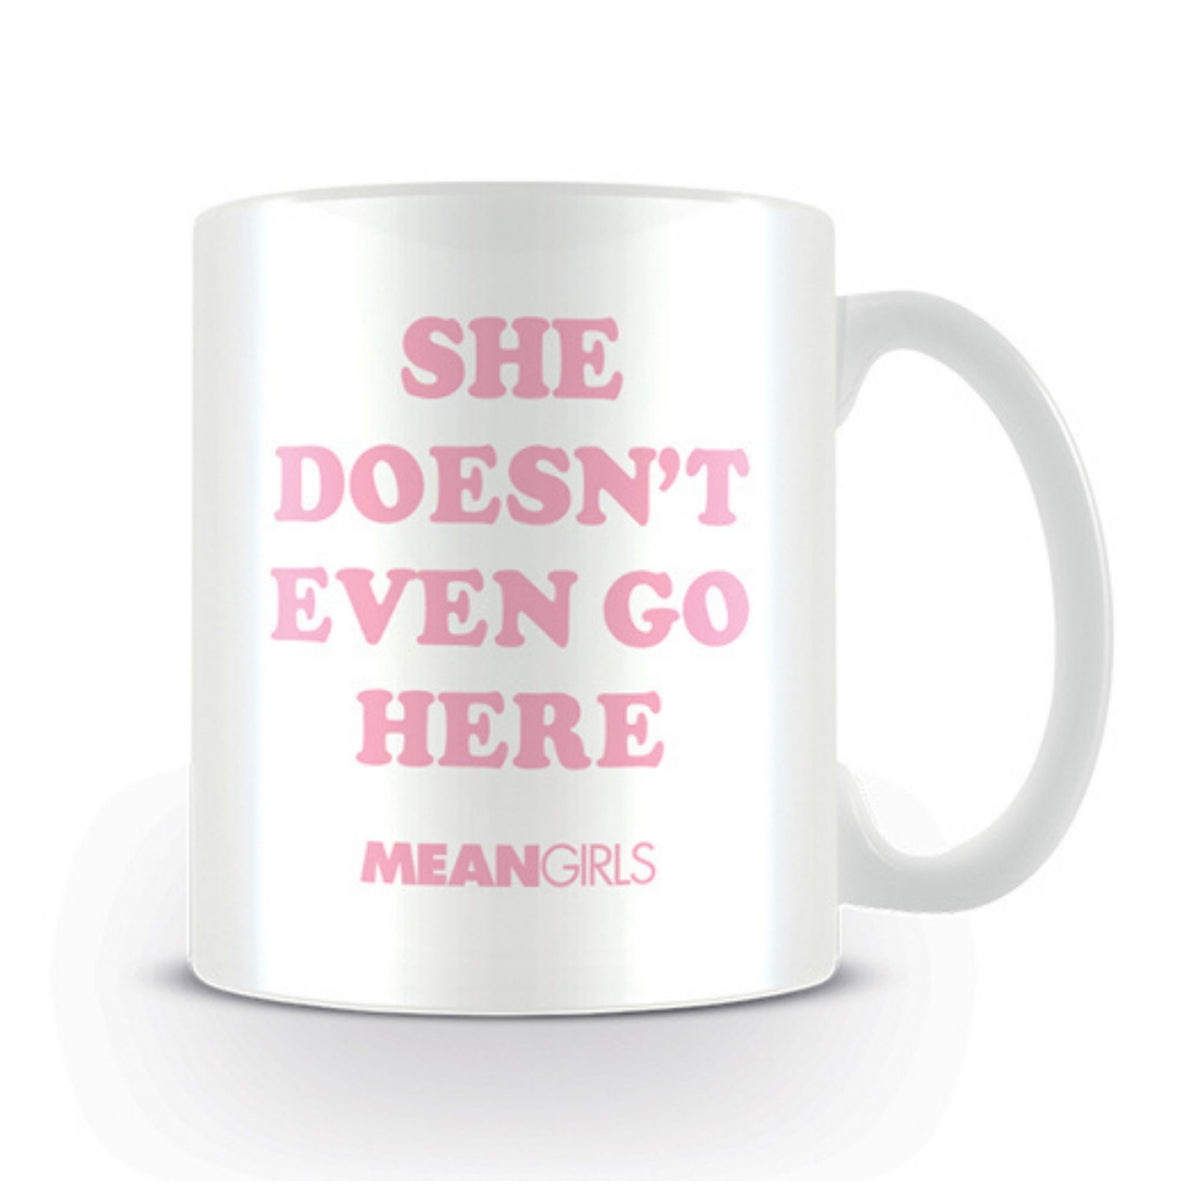 Mean Girls Mug - She Doesn't Even Go Here